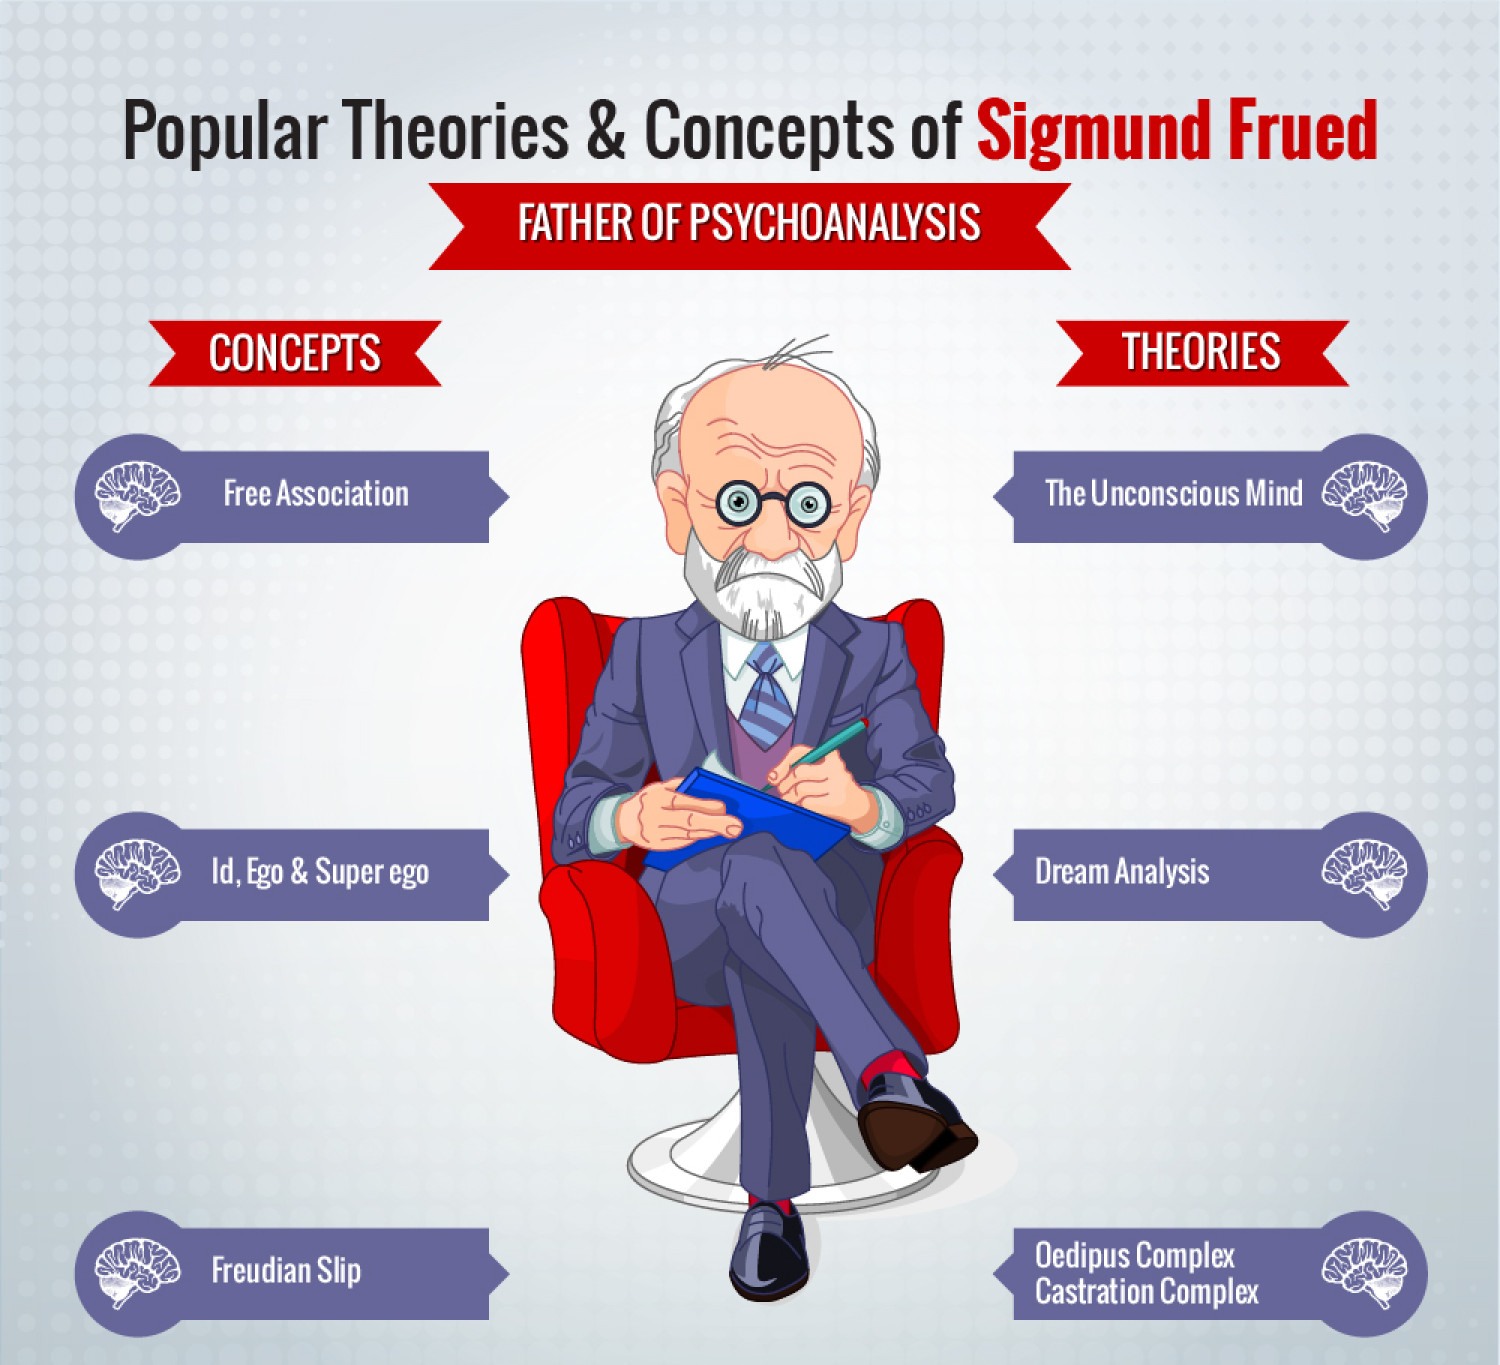 the theories and concepts of sigmund freud Sigmund freud (1856-1939) was an austrian neurologist and psychiatrist, and the founder and developer of psychoanalysis he is known for his theories of childhood sexuality and development, his division of the human psyche into three parts (id, ego, superego), as well as his approach to unveiling unconscious conflicts using free association and studying dreams and fantasies.